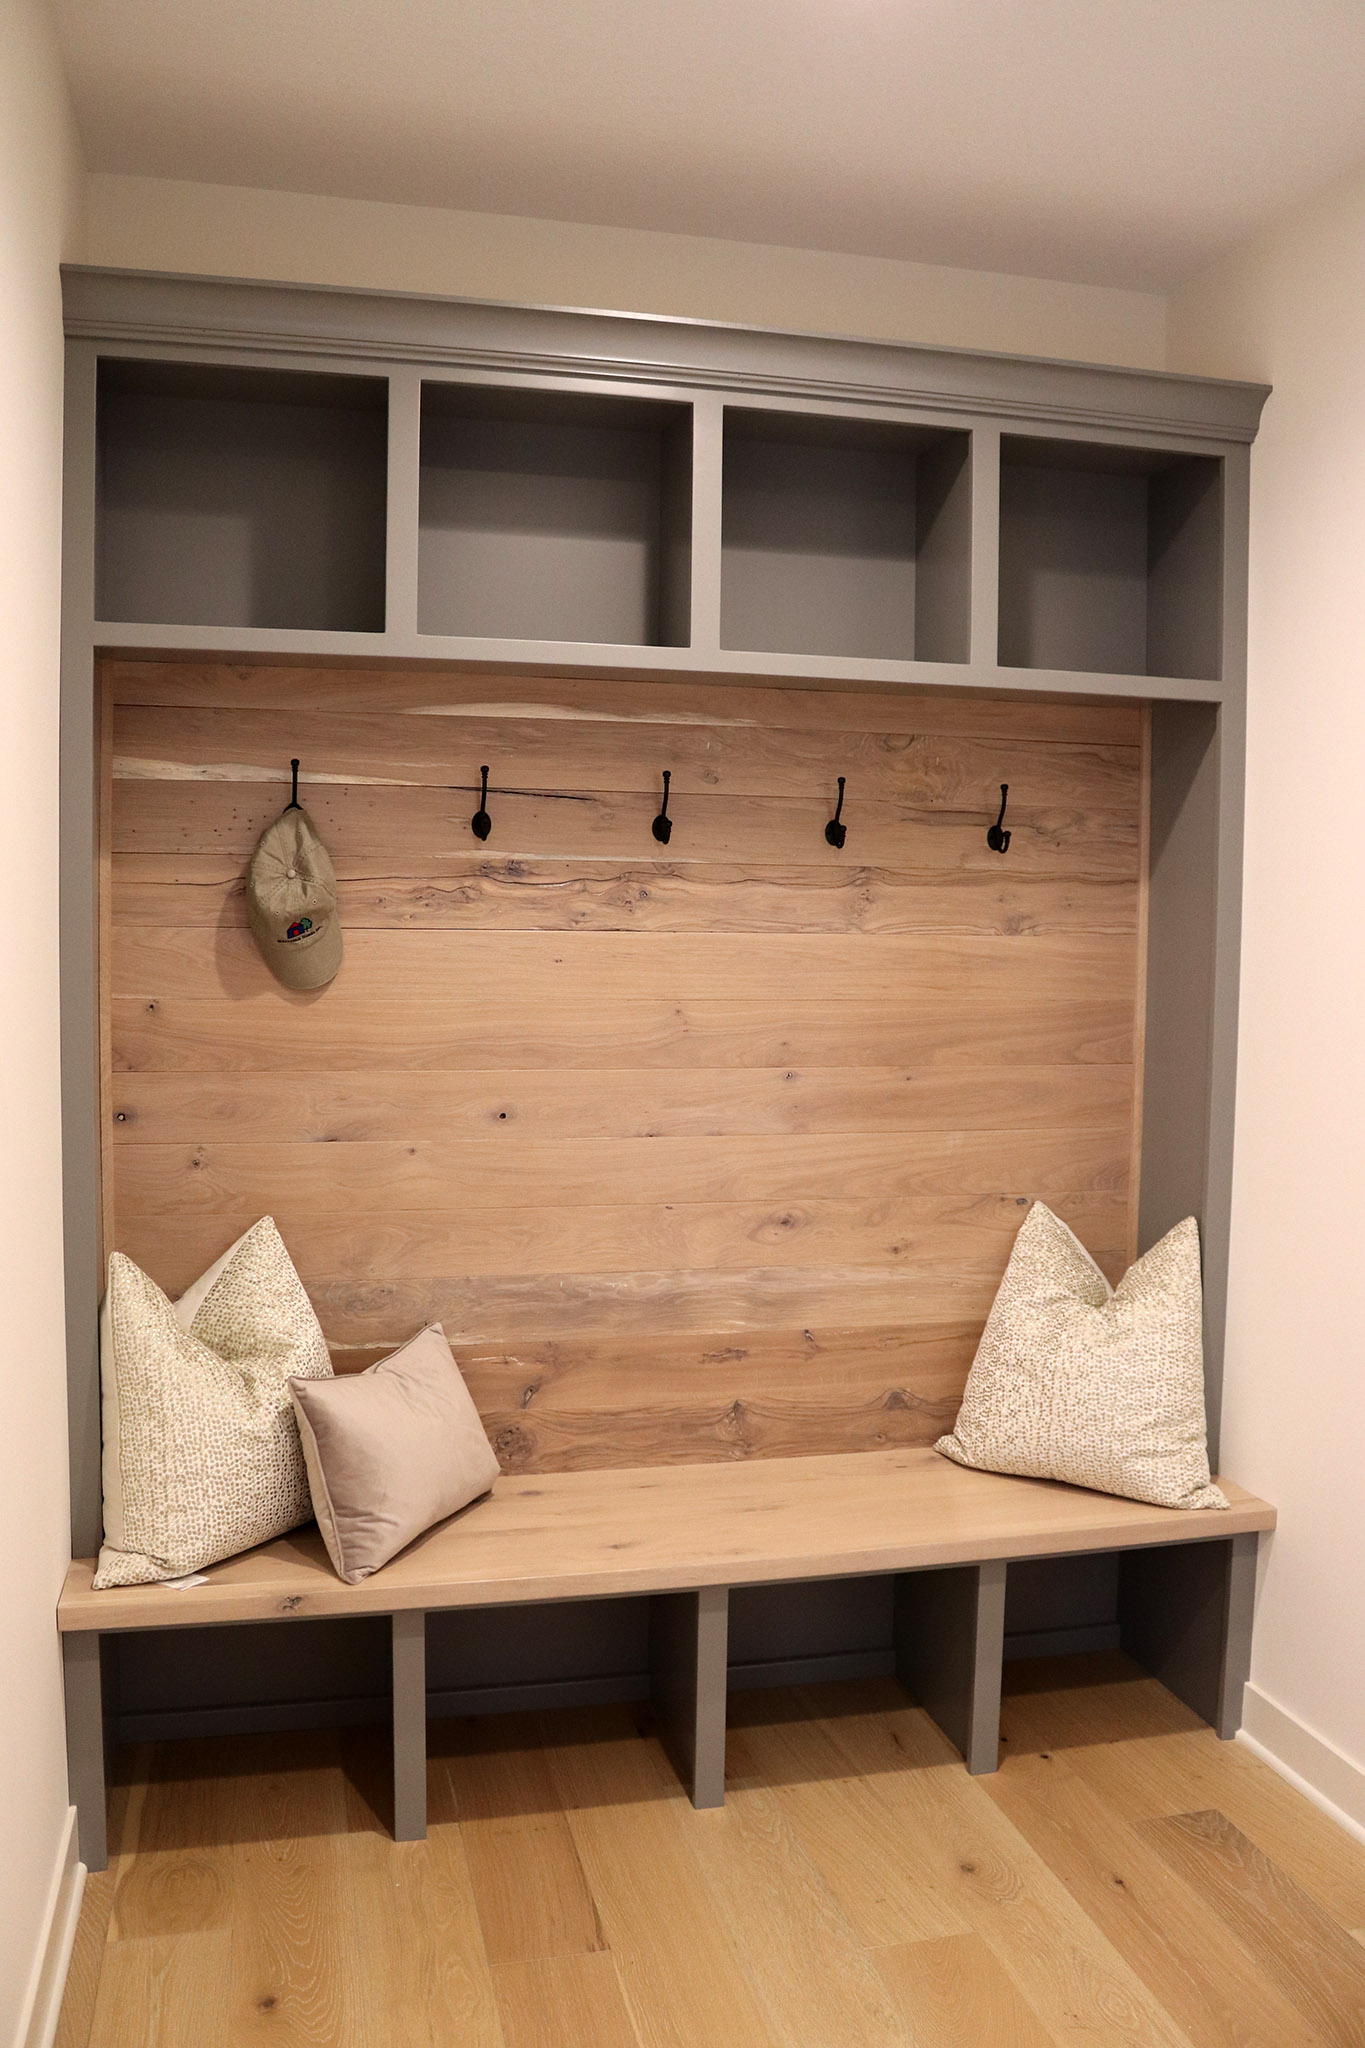 Mudroom lockers with coat hooks, open shoe storage below, open shelves above with shiplap wood accent and bench